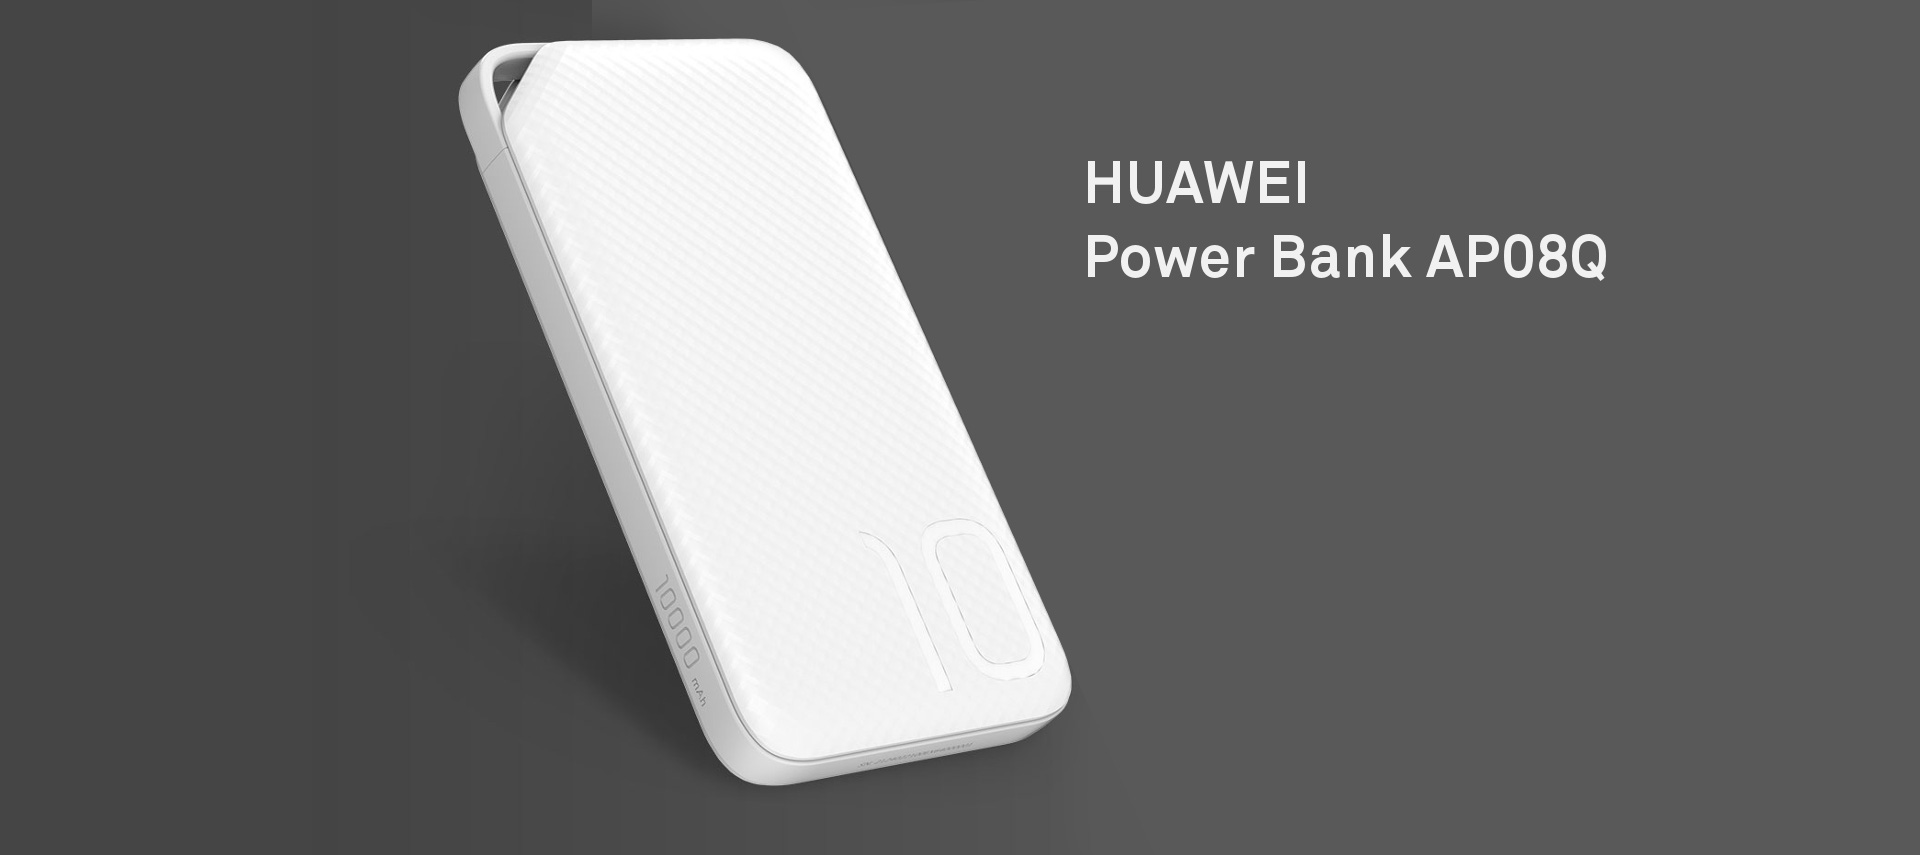 HUAWEI Power Bank AP08Q